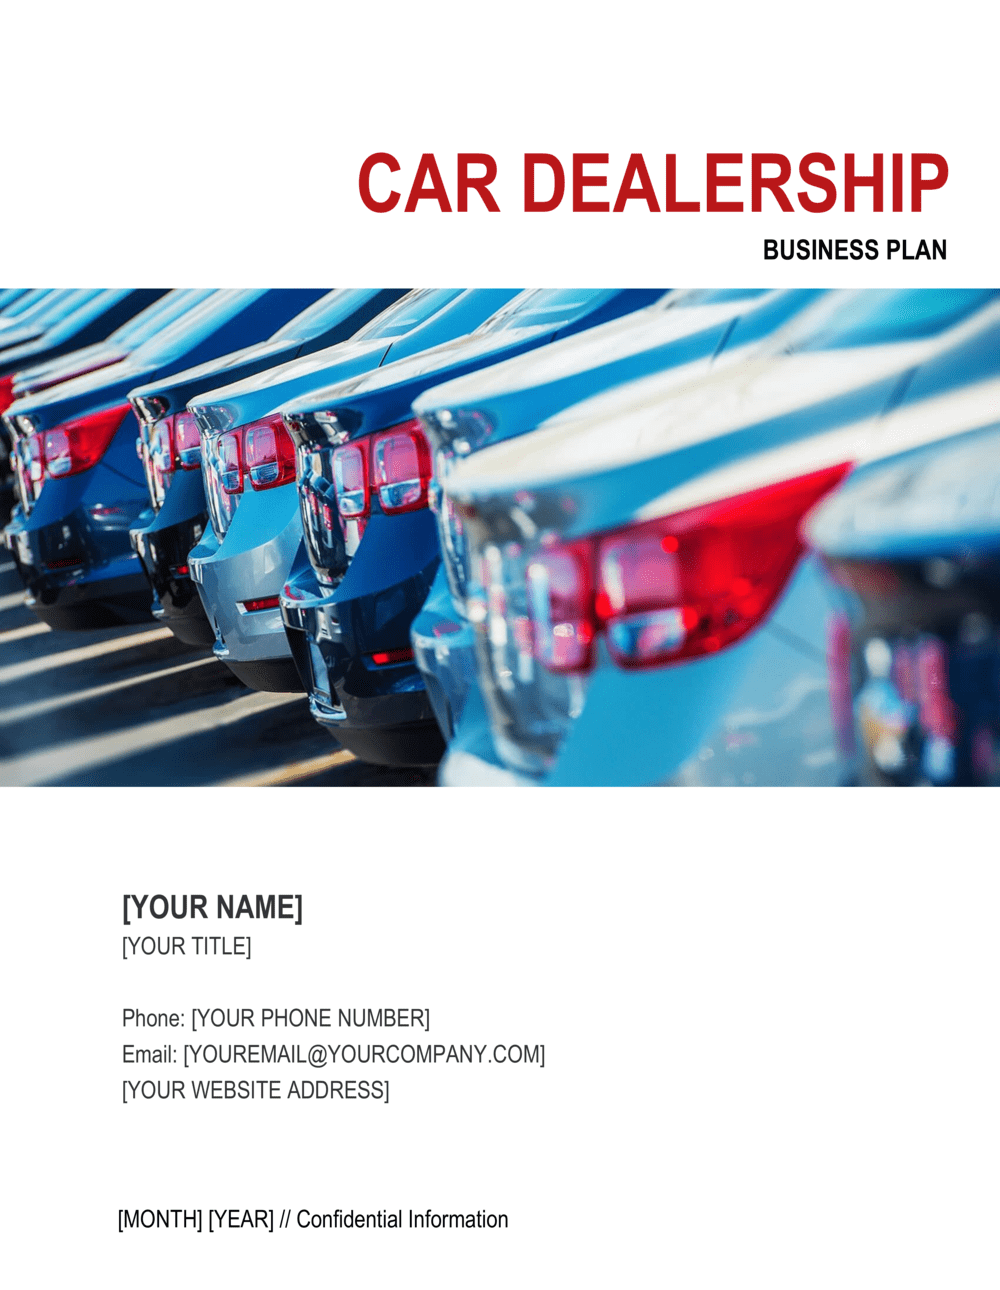 Business-in-a-Box's Car Dealership Business Plan 2 Template